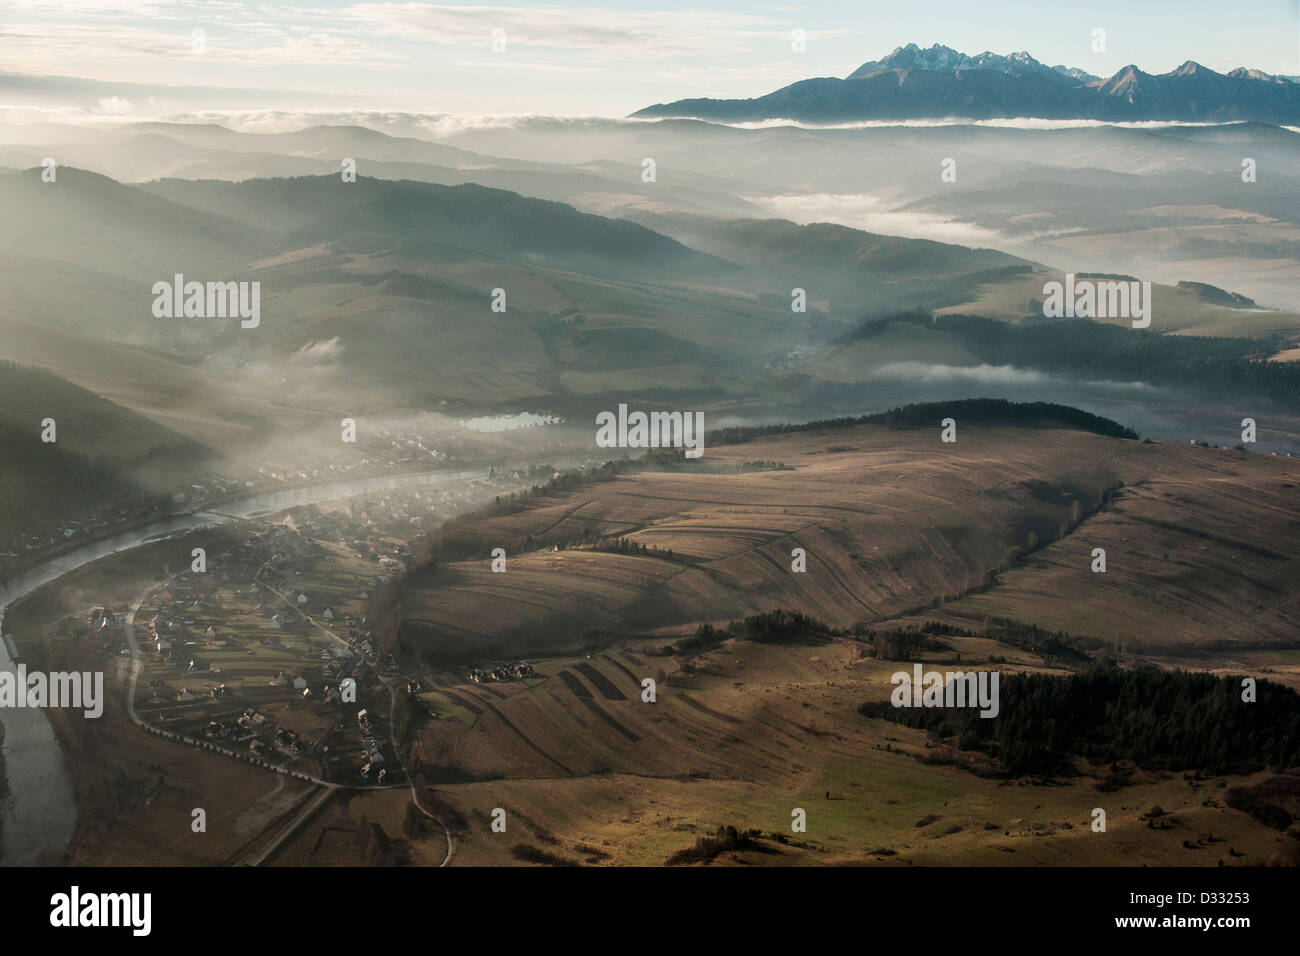 Podhale region seen from Three Crowns Peak in Pieniny National Park, Poland - Stock Image